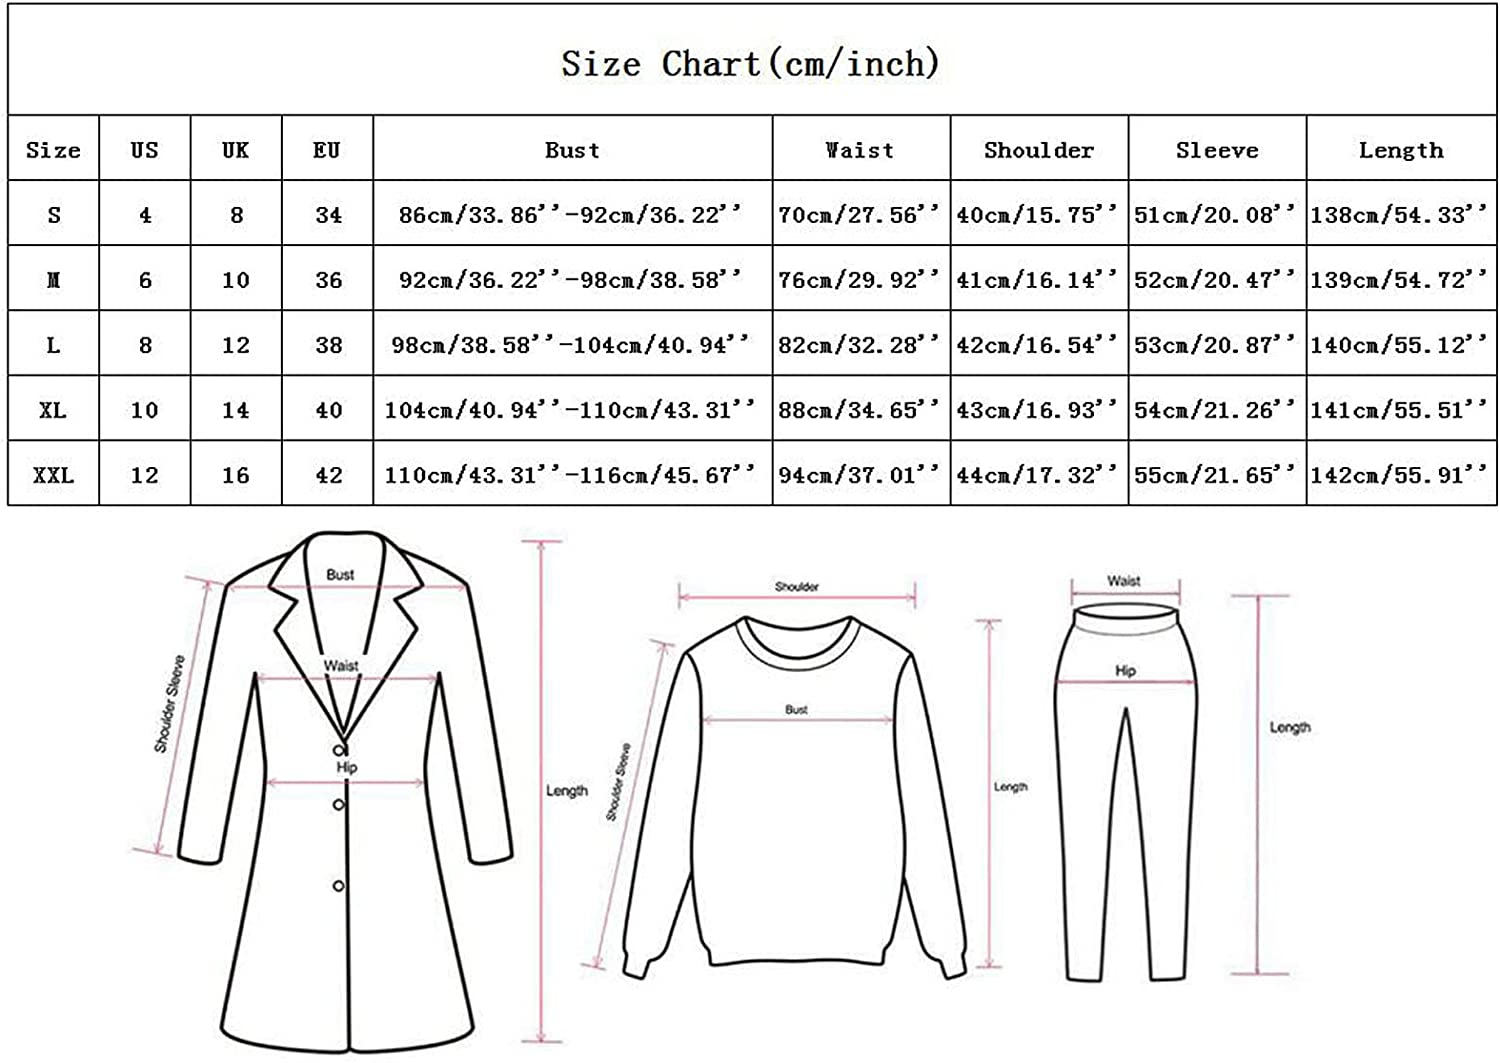 NLLSHGJ Womens Dresses for Wedding Guest Plus Size Cool Patchwork Bandage Long Sleeve Robe Long Cocktail Casual Dresses